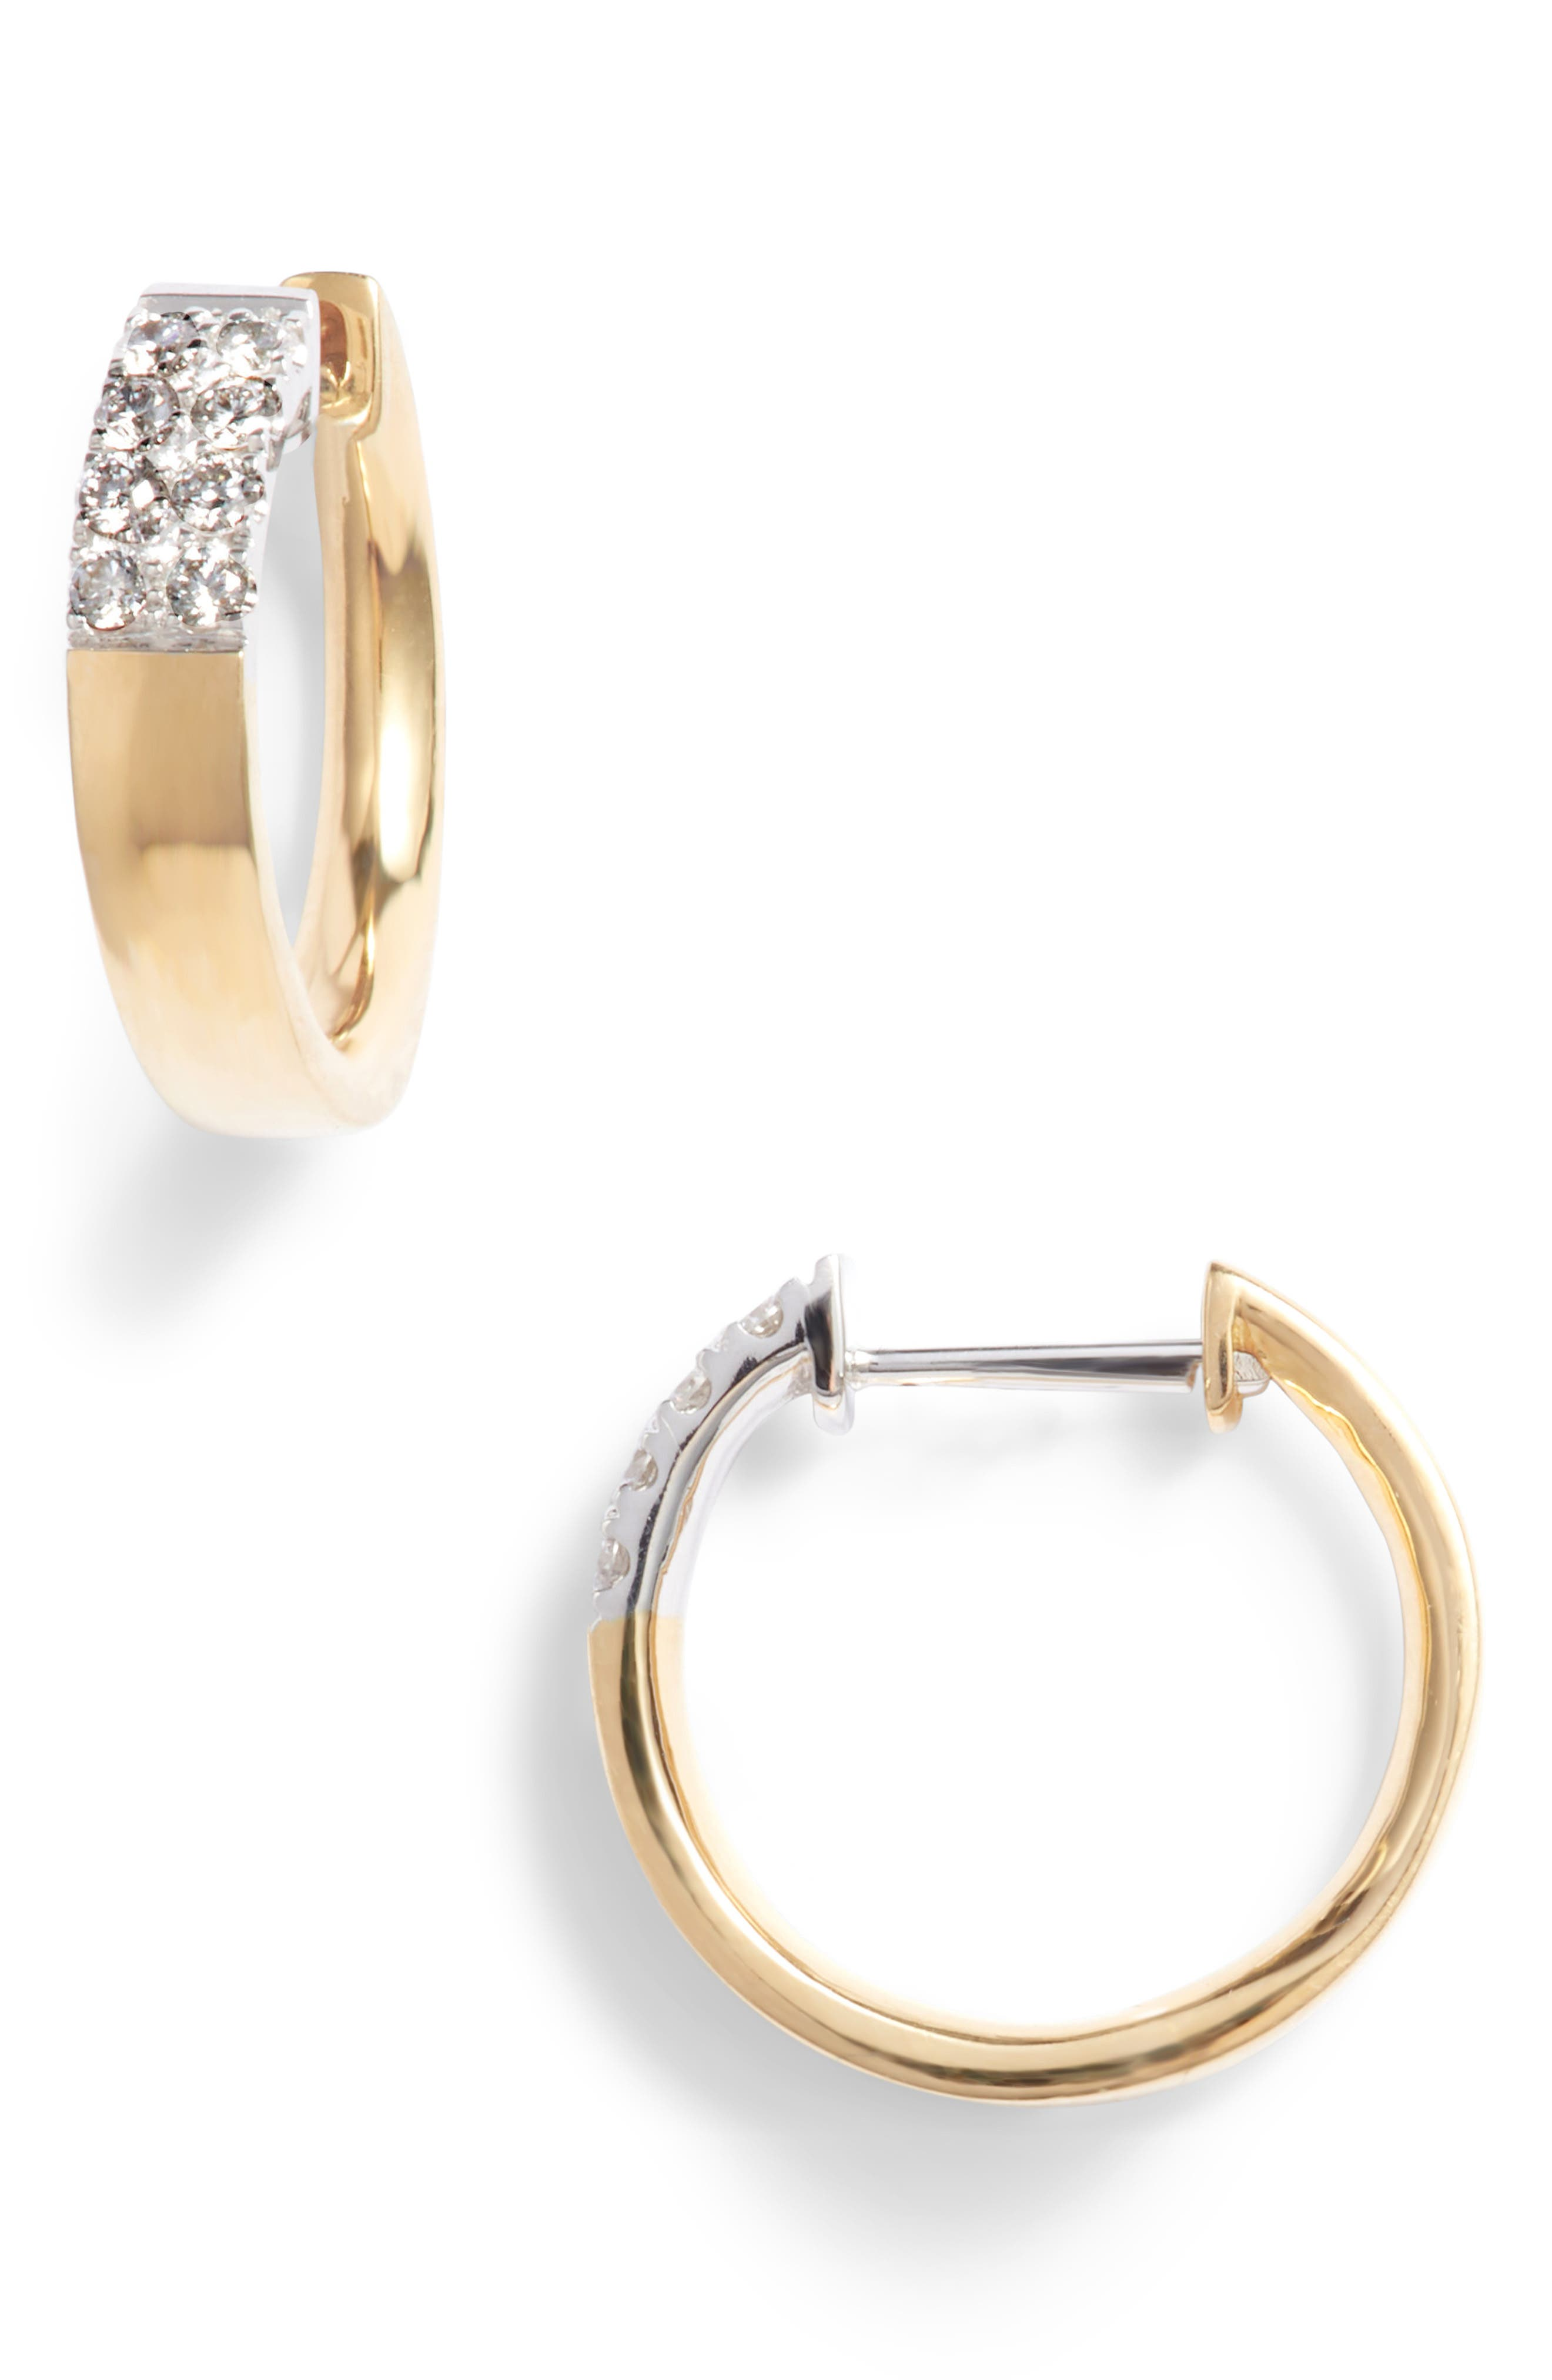 Kiera Small Diamond Hoop Earrings,                         Main,                         color, YELLOW GOLD/ WHITE GOLD